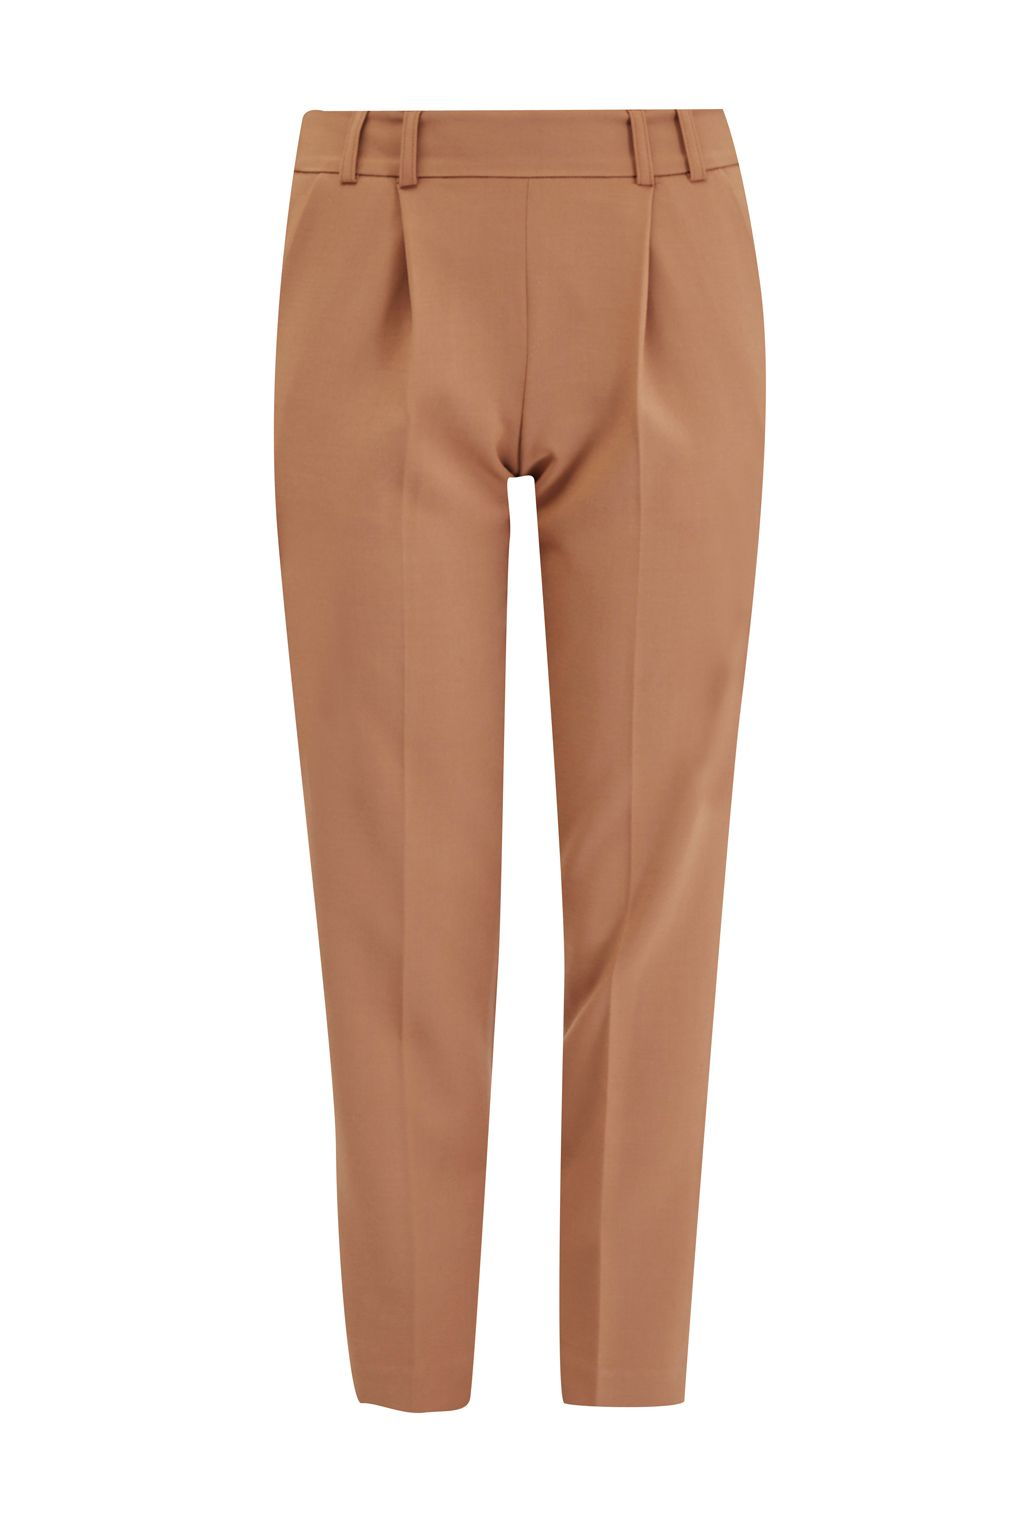 French Connection Whisper Light Cropped Peg Trousers, Brown